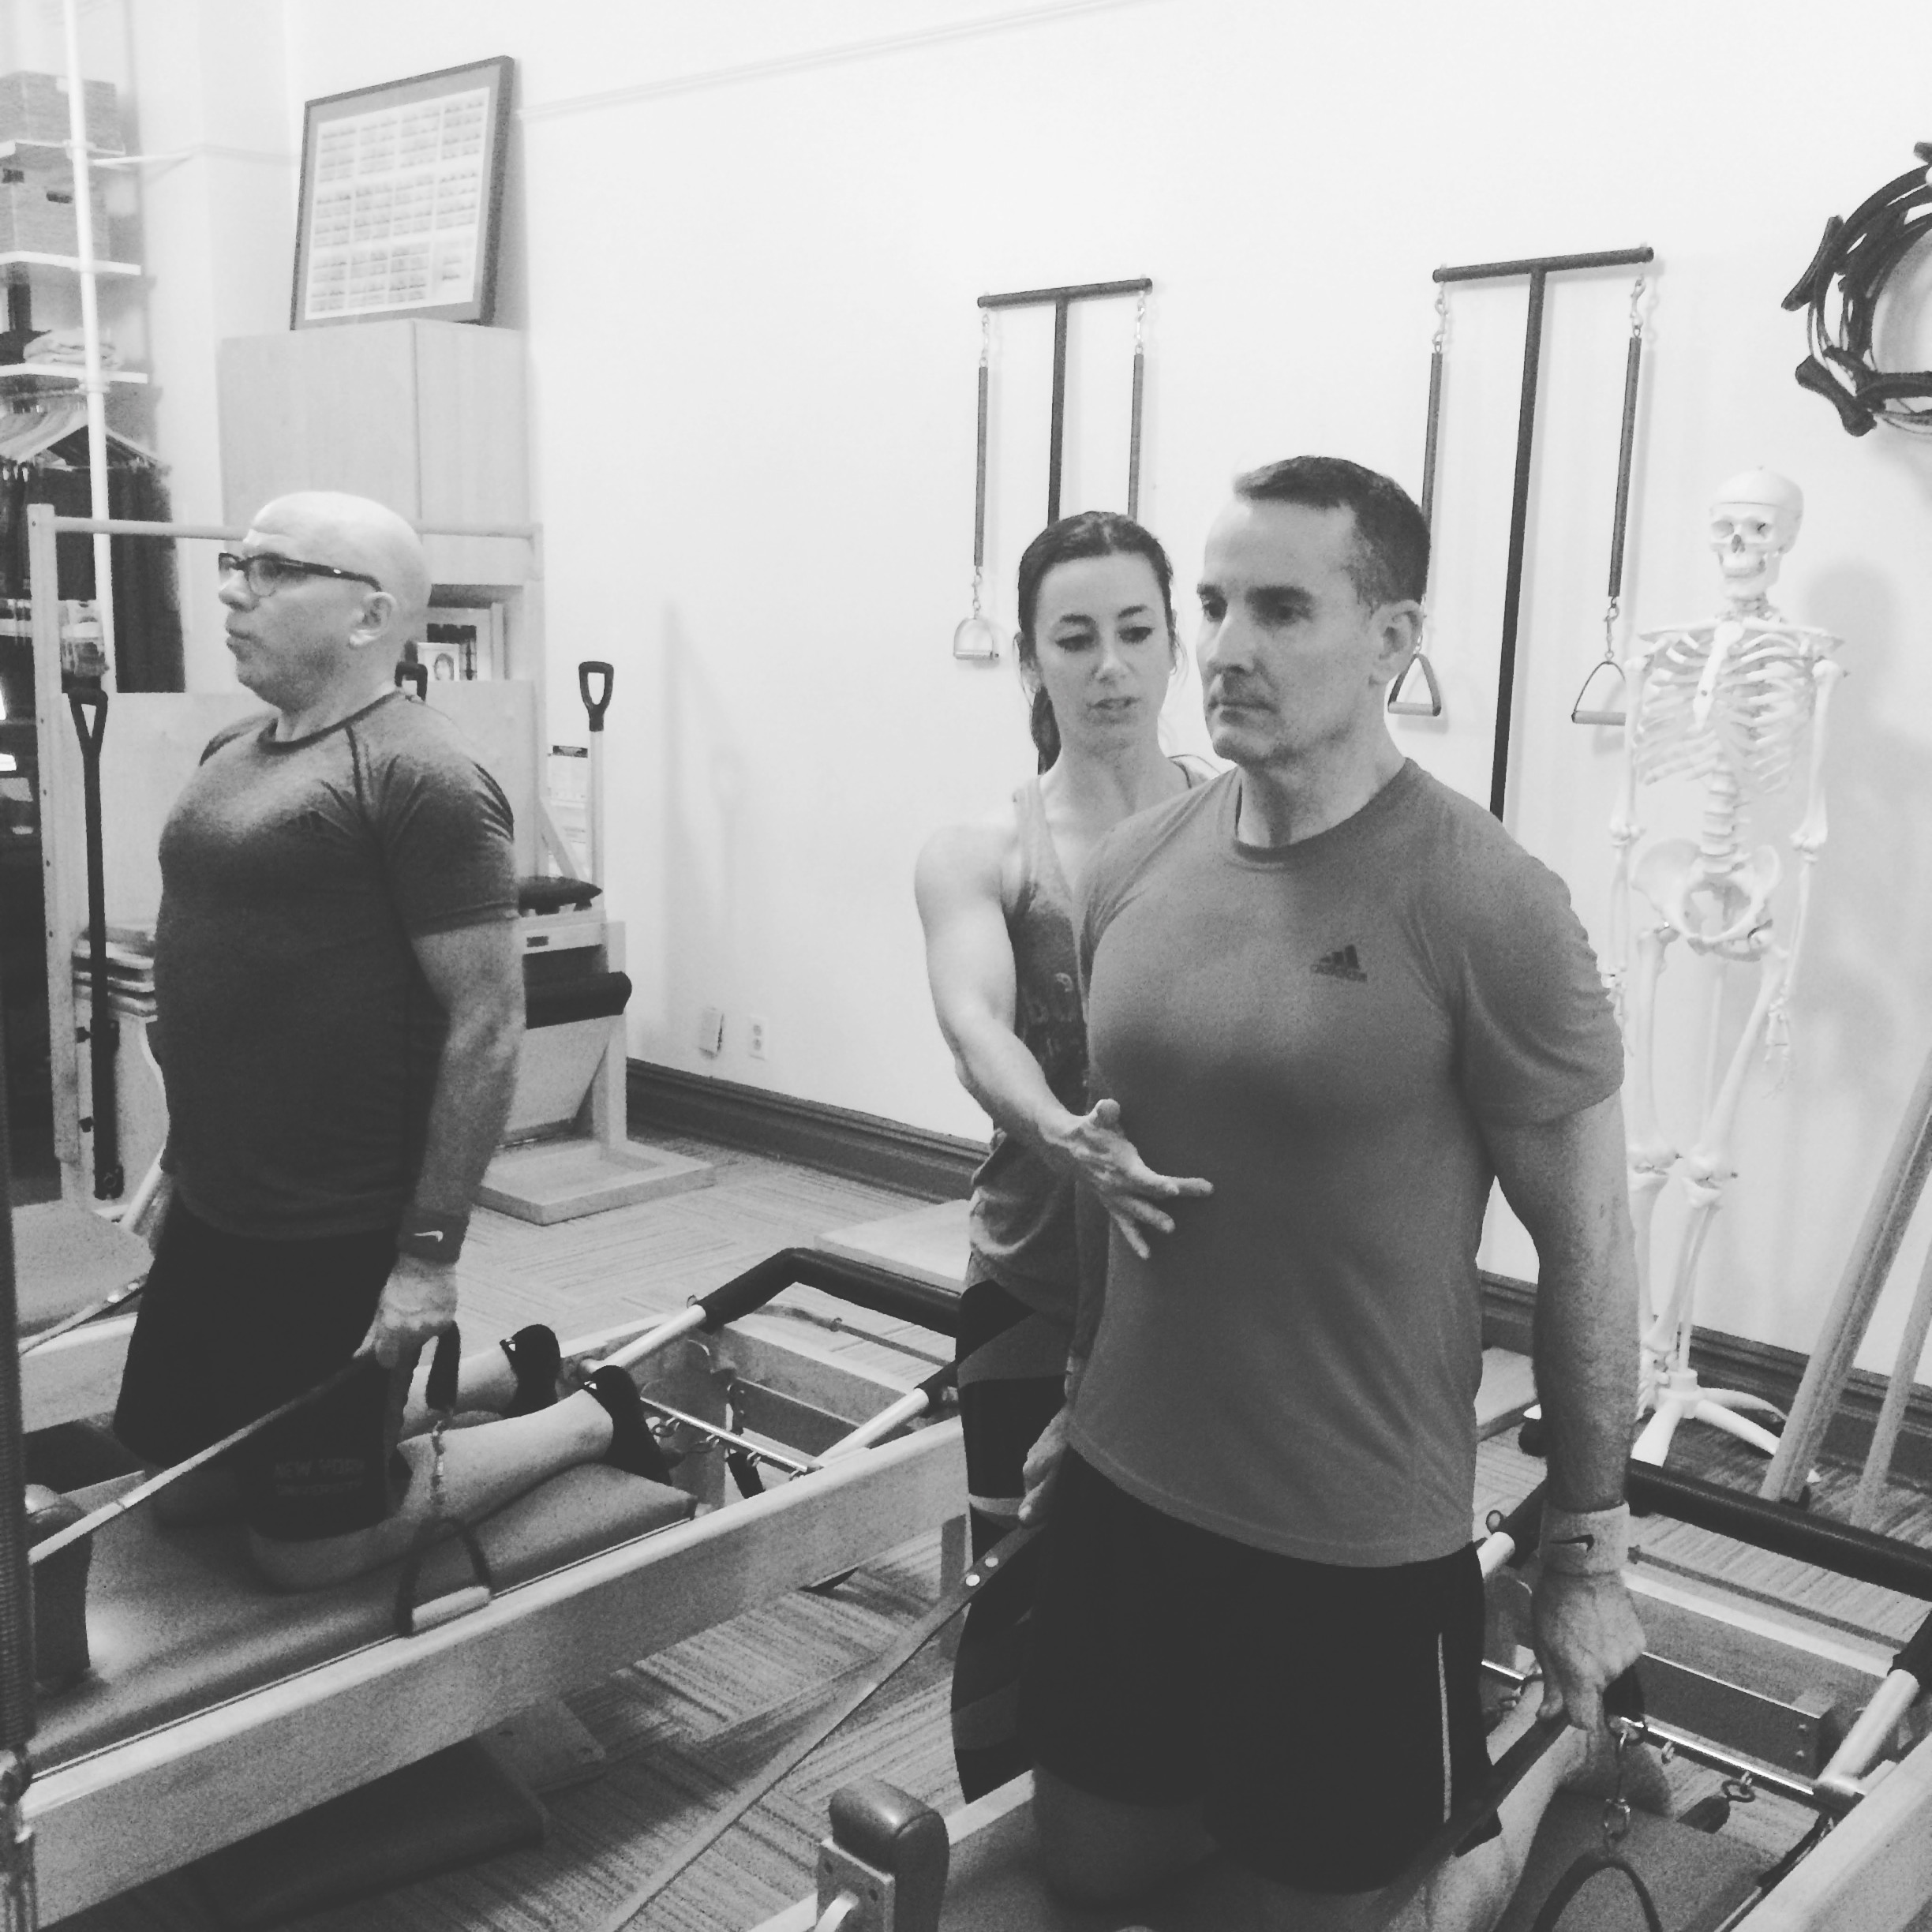 Craig & Paul, BodyTonic Pilates clients